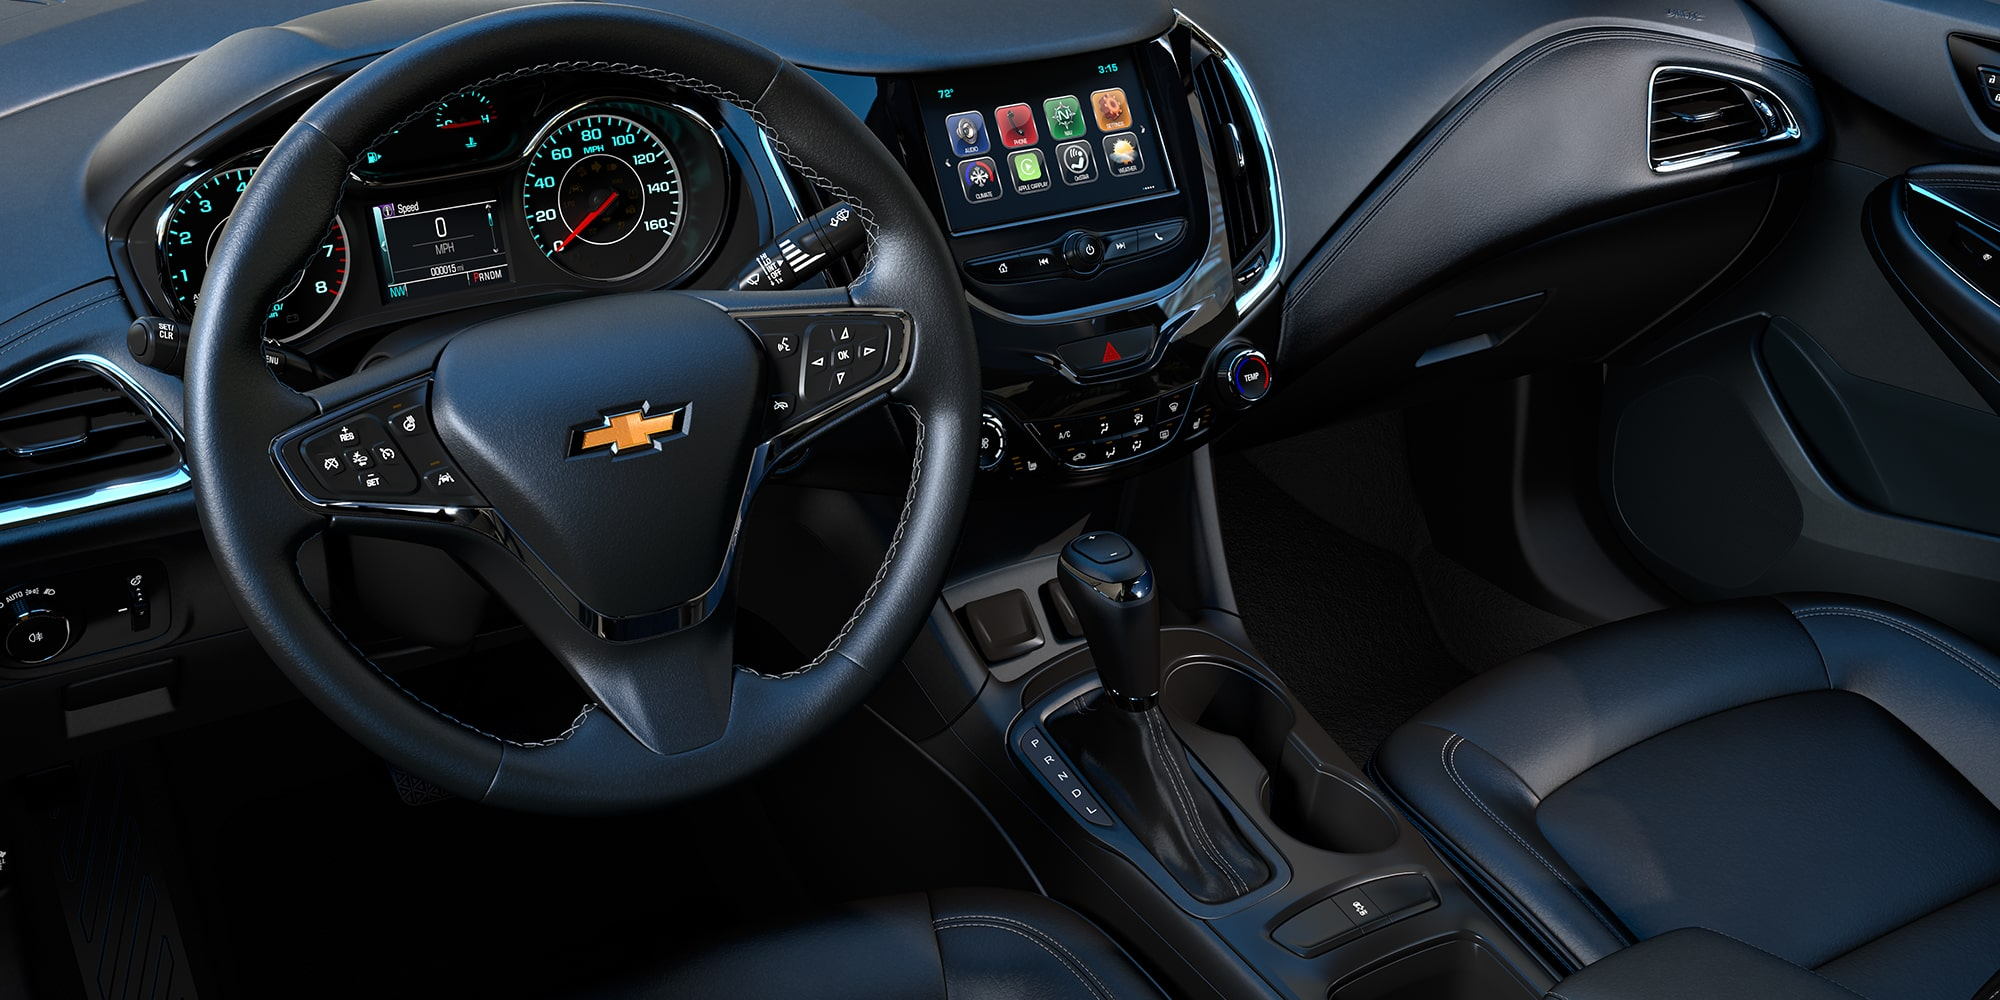 2018 Cruze Compact Car Interior: Cockpit